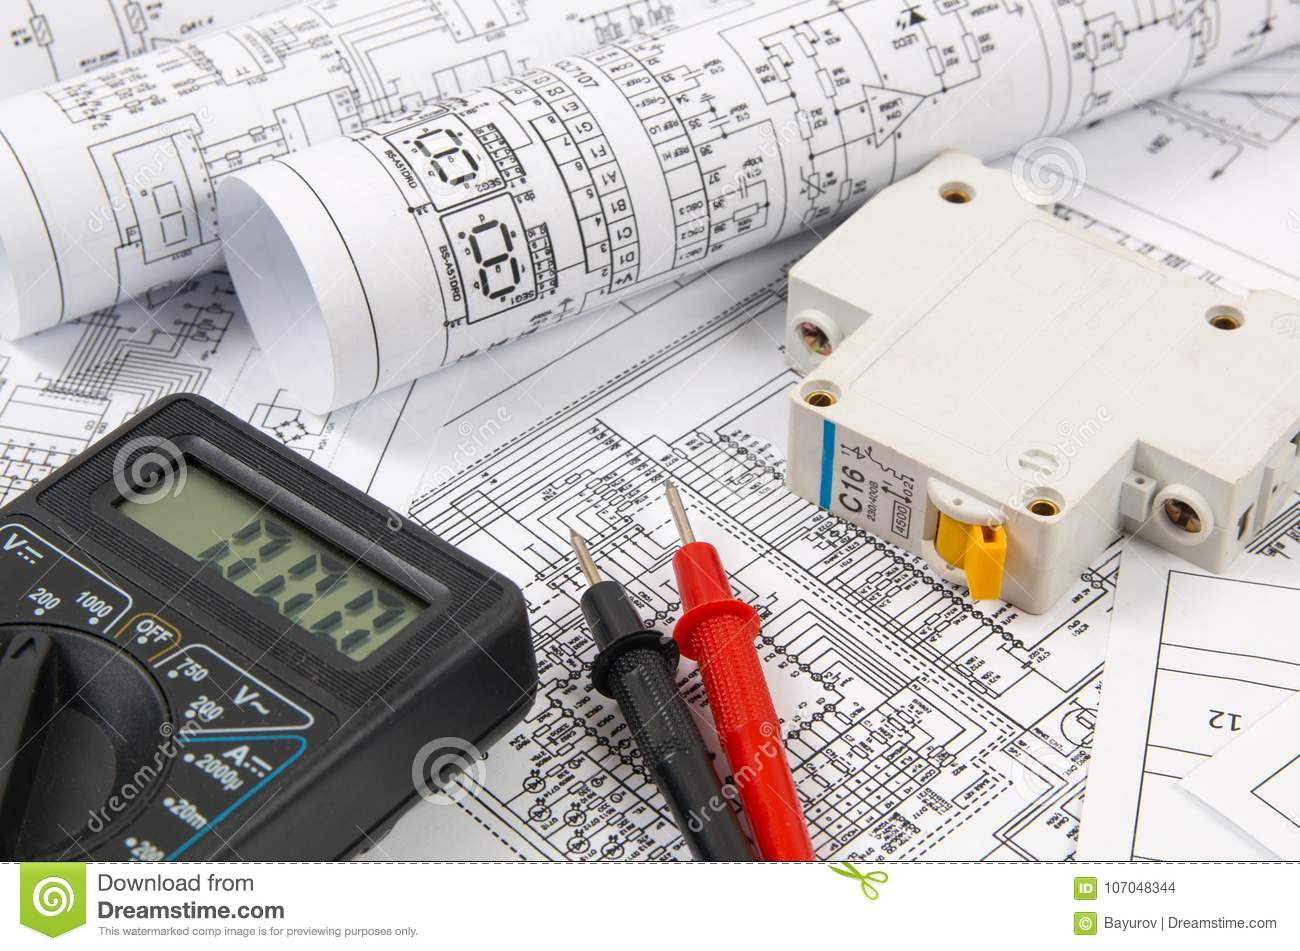 hight resolution of science technology and electronics electrical engineering drawings printing with circuit breaker and mulyimeter